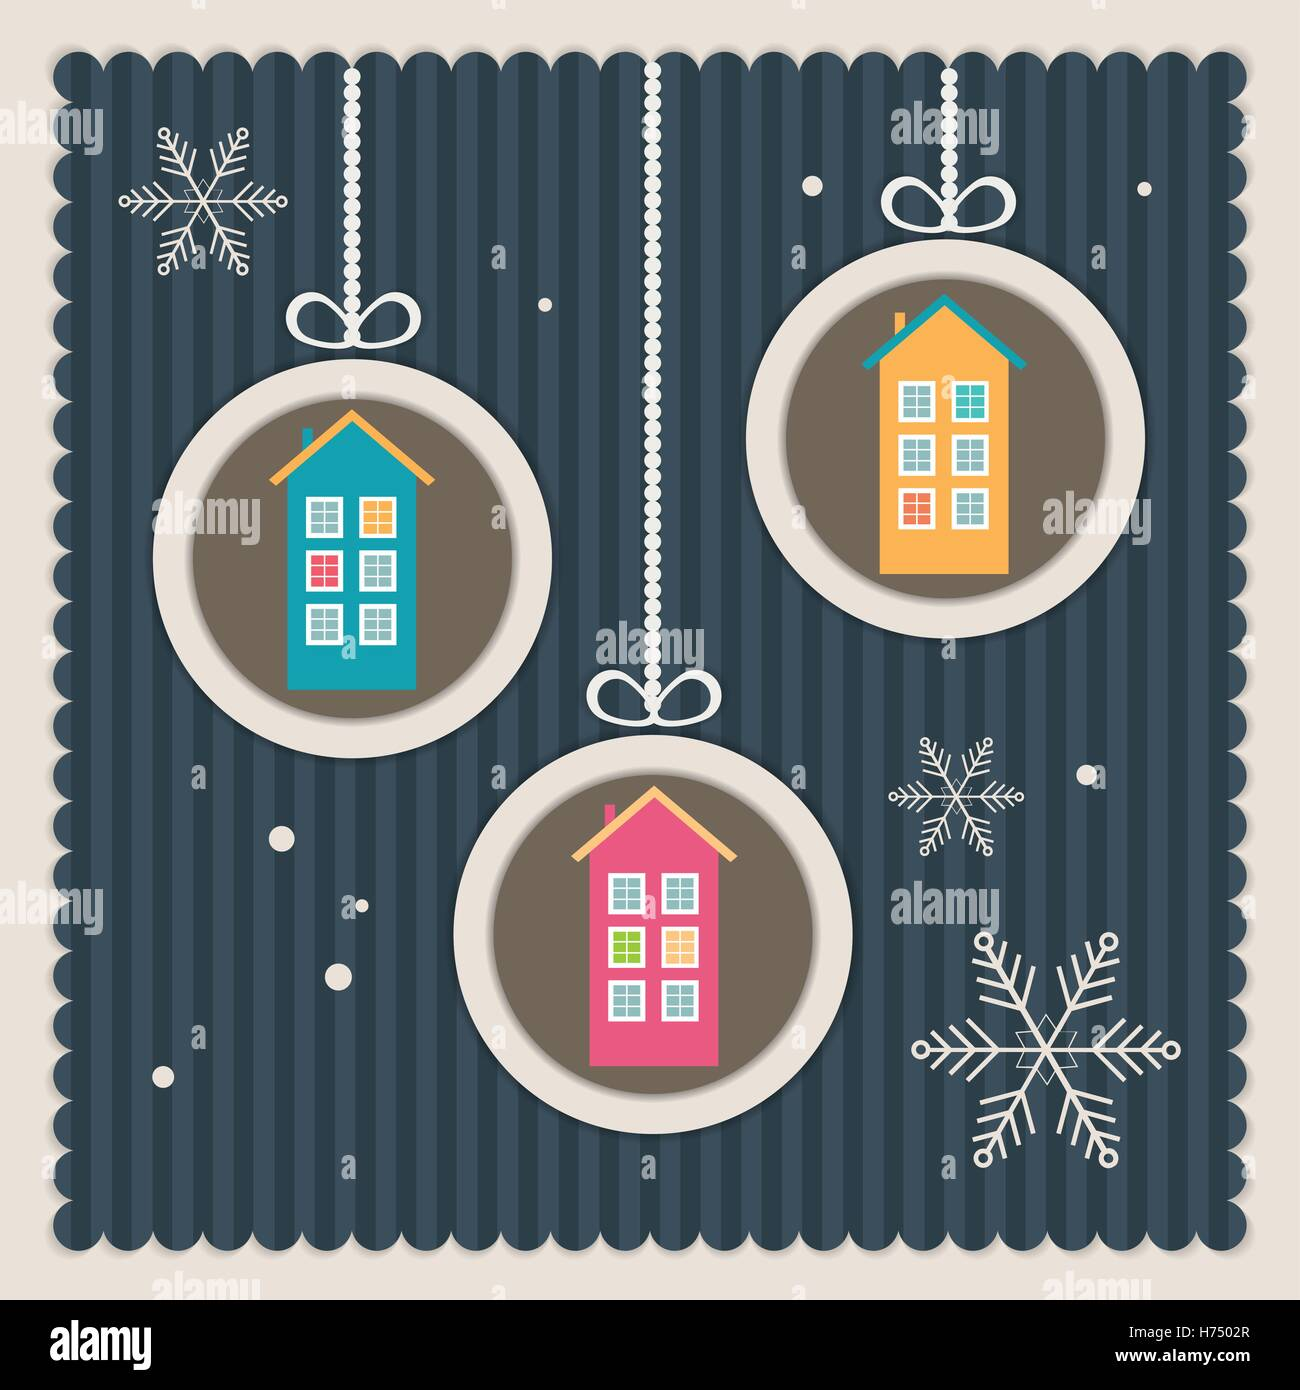 Real estate christmas card colorful stock photos real estate real estate christmas card with colorful houses and snowflakes stock image m4hsunfo